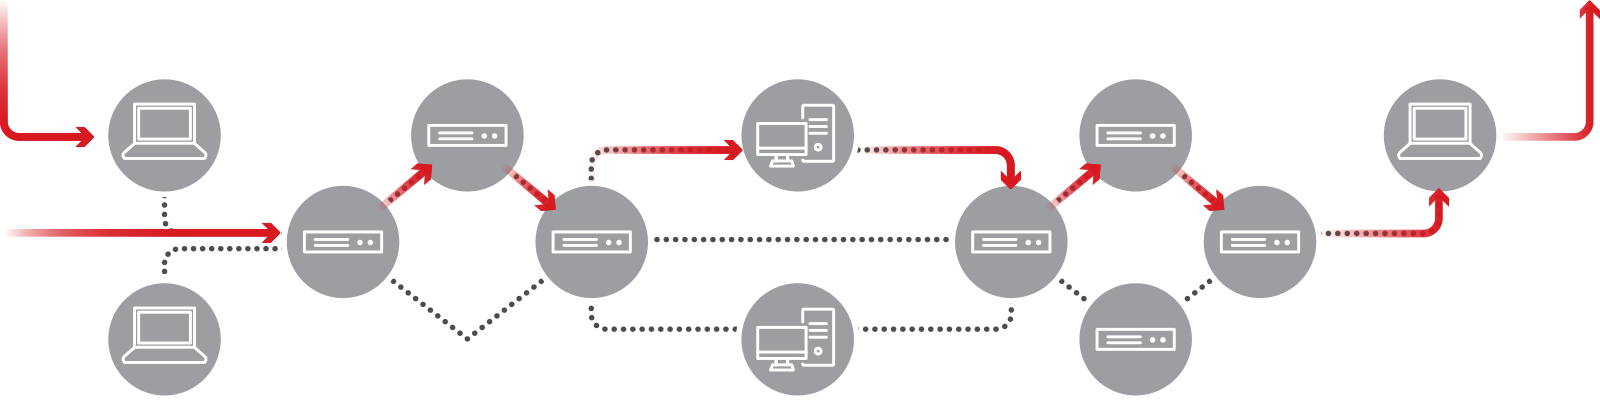 Trend Micro Protection Layers Interactive Infographic | Blue